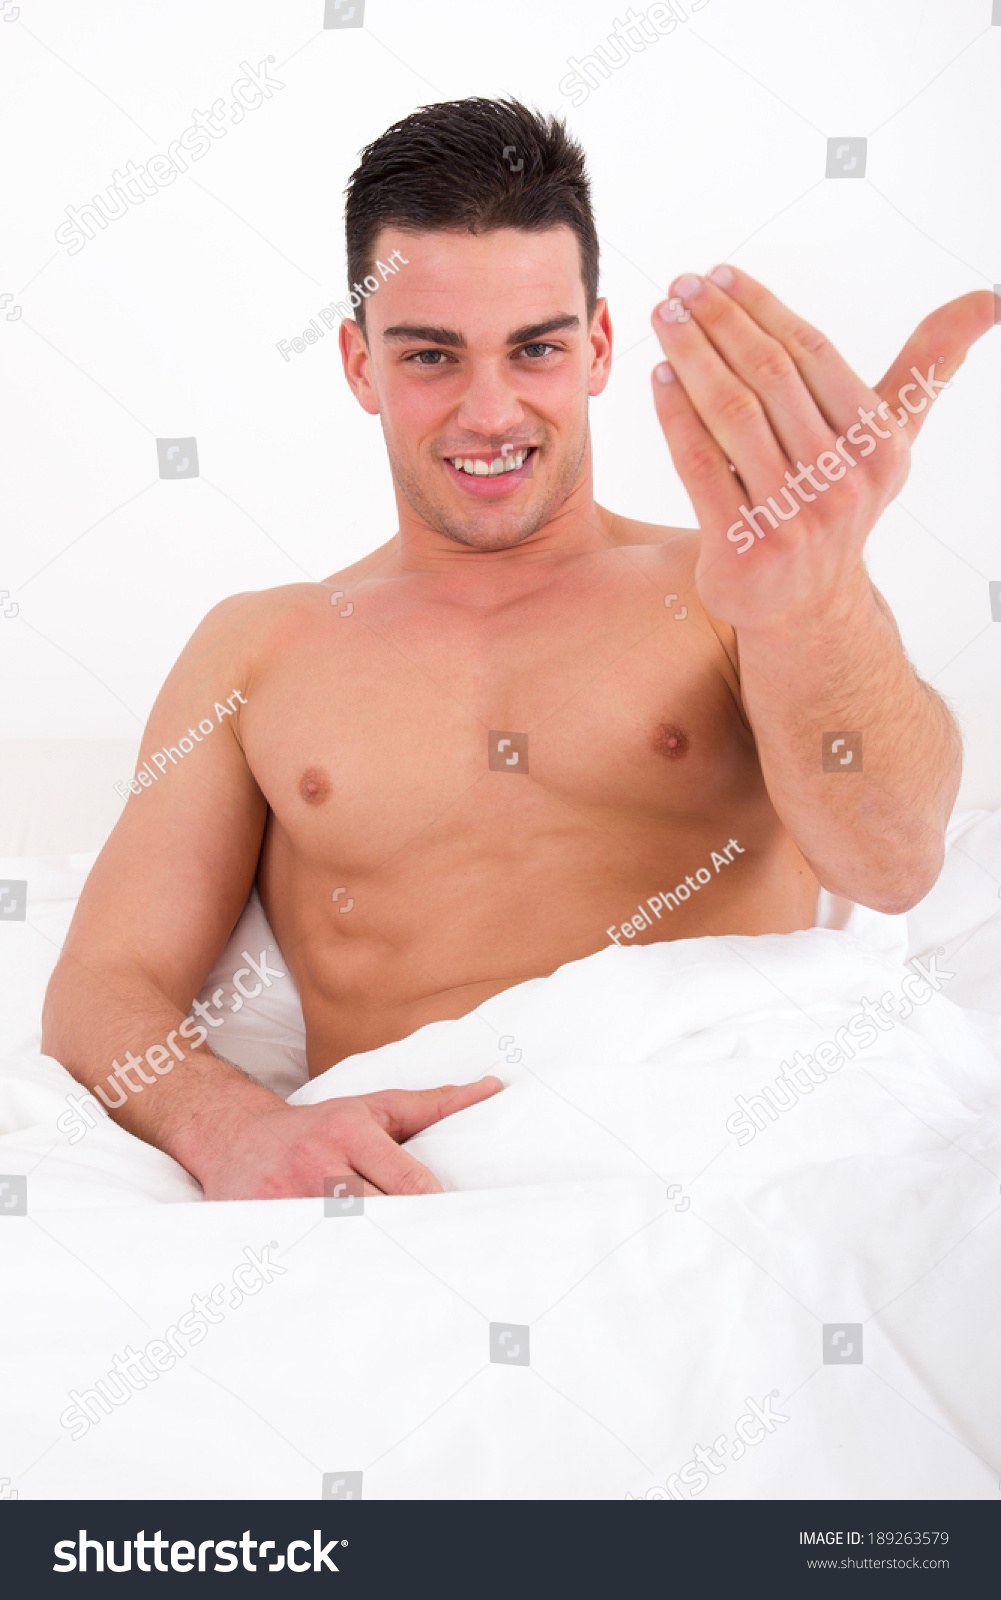 Wanna sexy naked man on bed with another man HOT!!!!!!!!!!!!!!!!!!!!